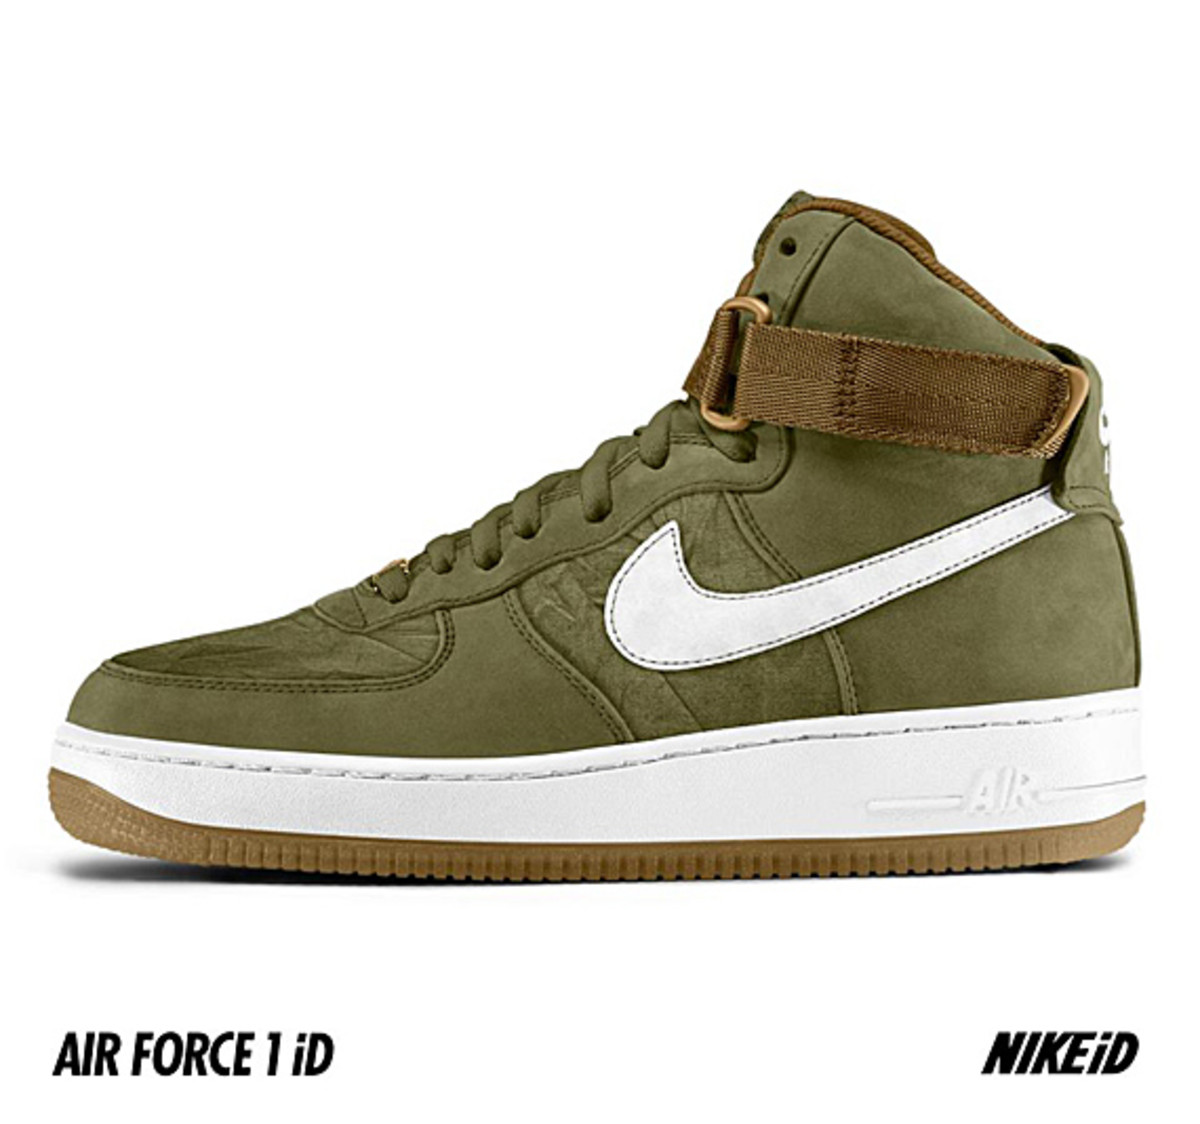 nikeid-air-force-1-id-10th-mountain-division-03